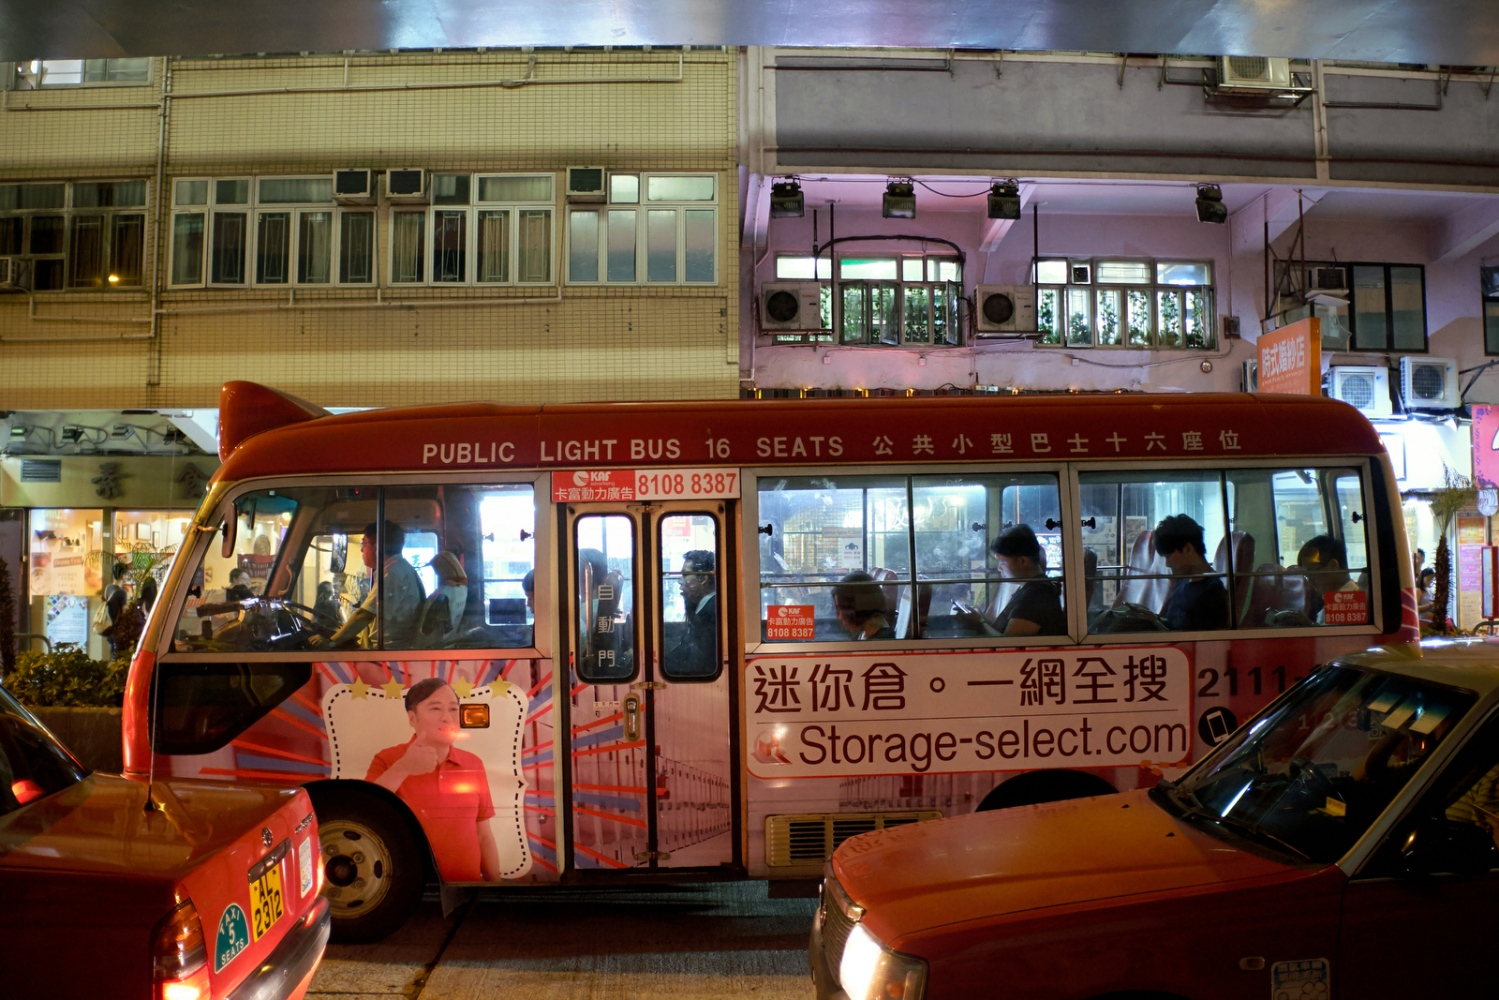 Public light bus, Sai Yee Street, Kowloon, Hong Kong.